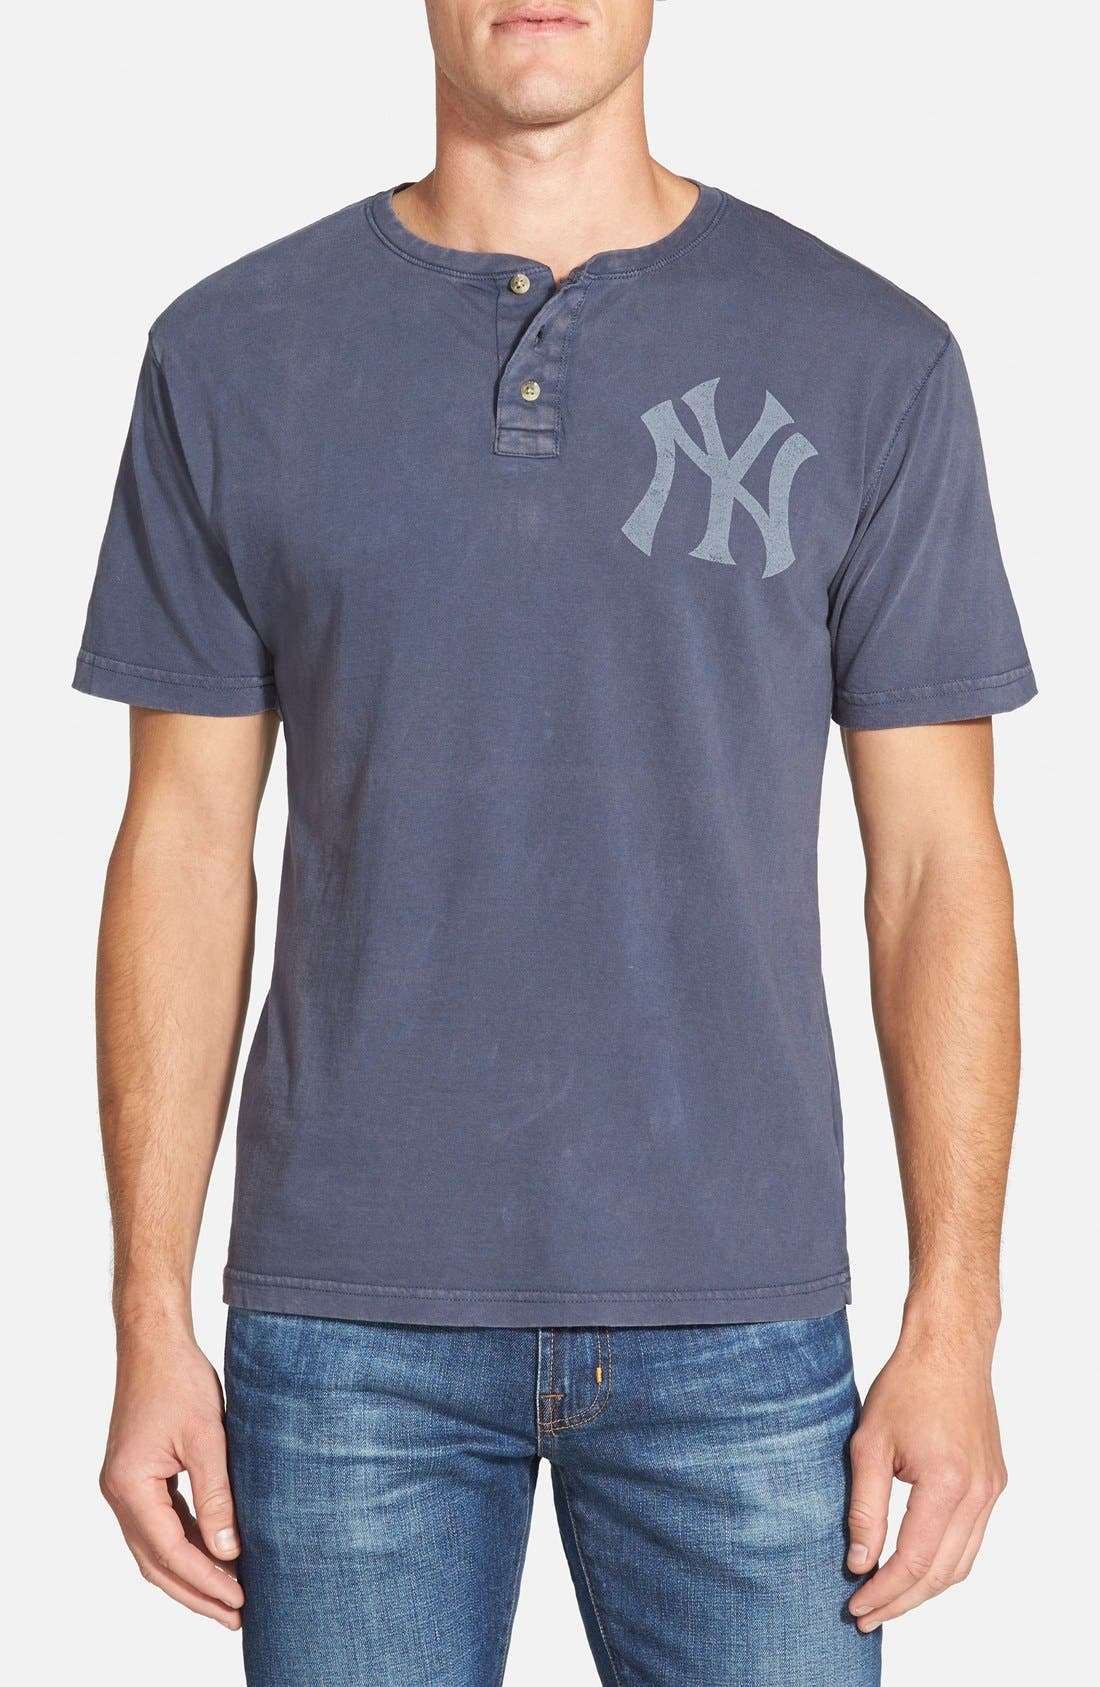 RED JACKET New York Yankees - Luther Henley